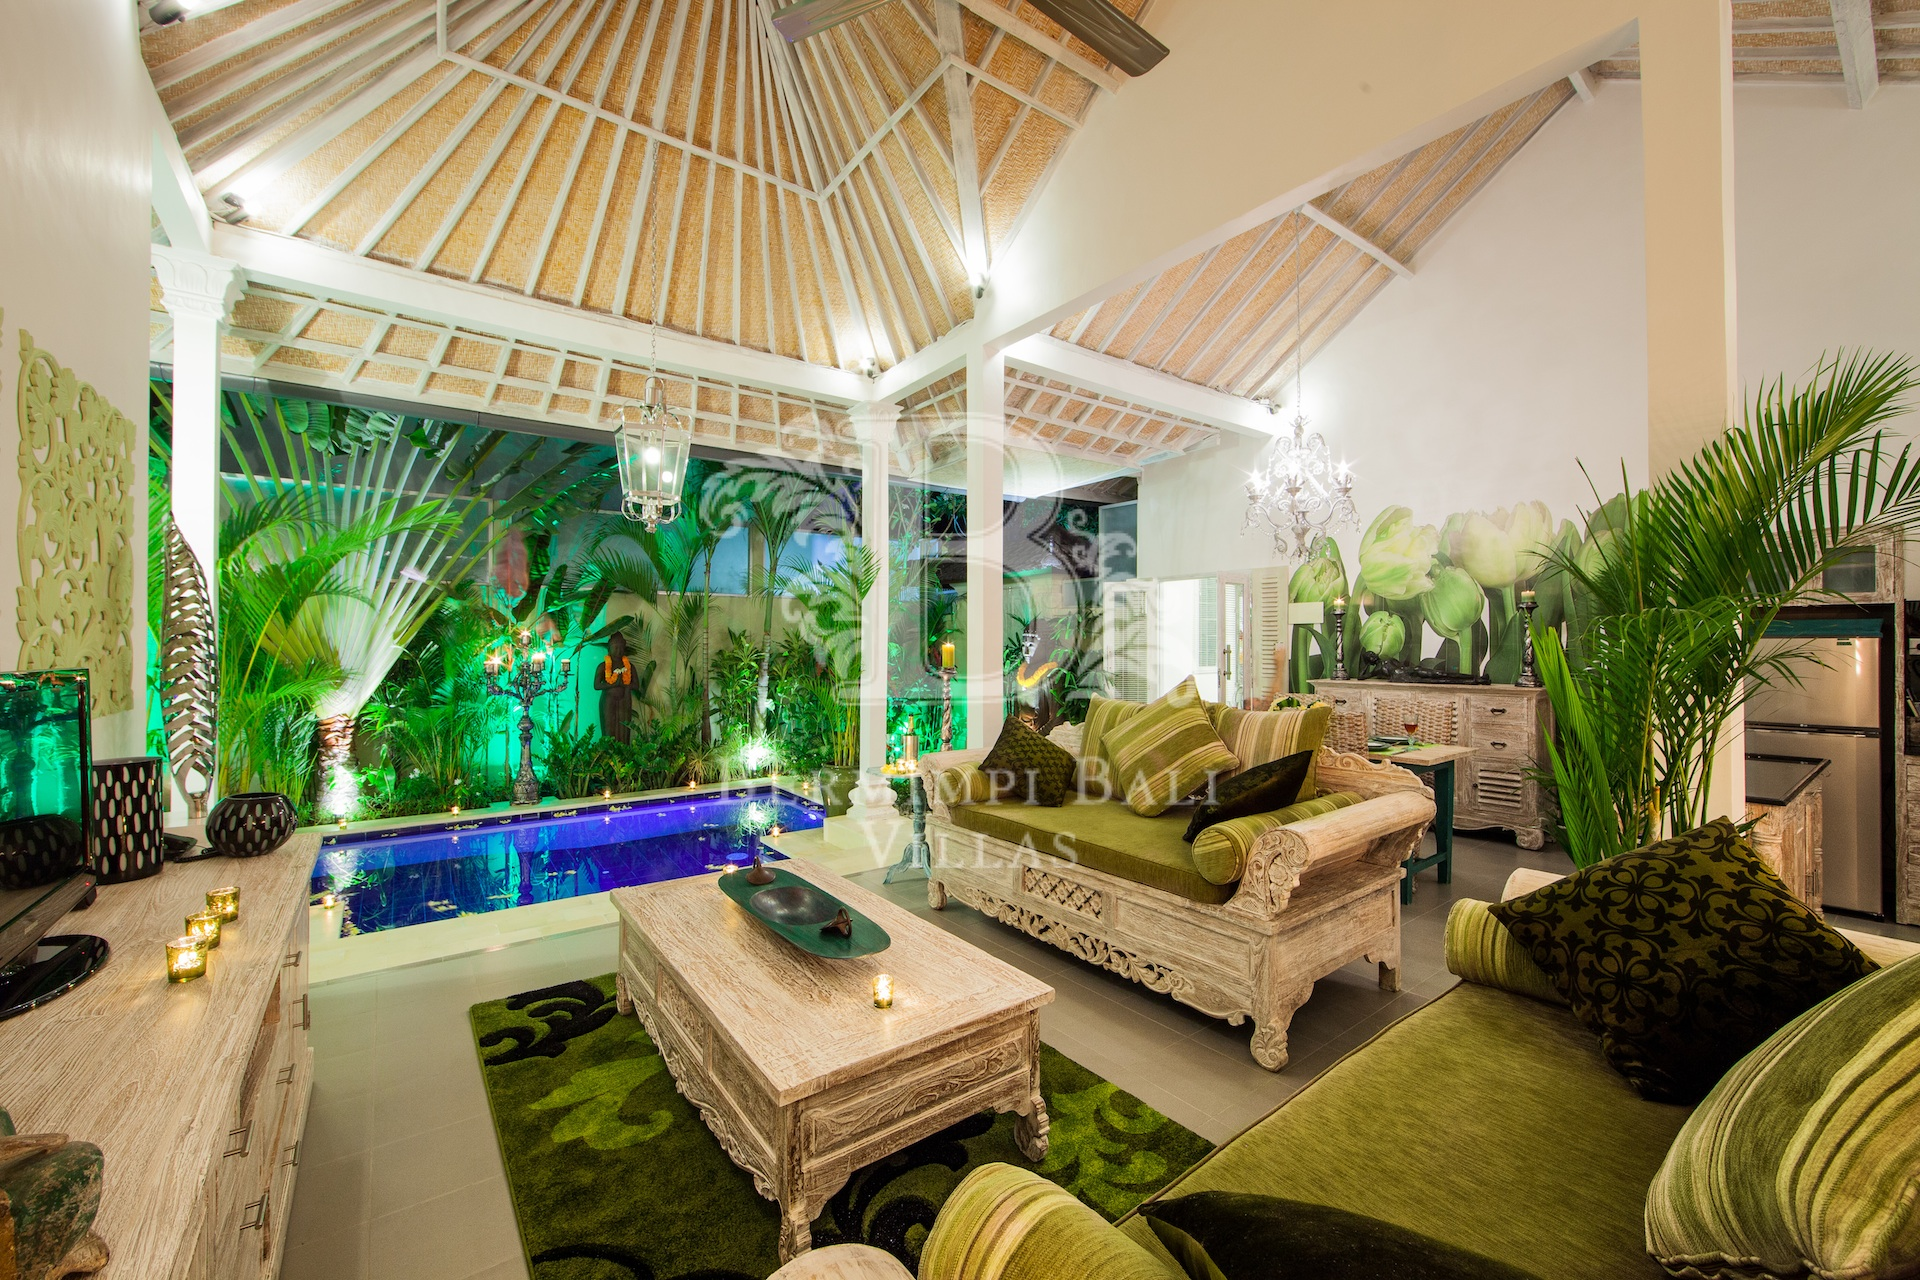 Private Villas in Bali with Designer Decors Designed for Comfort and Style